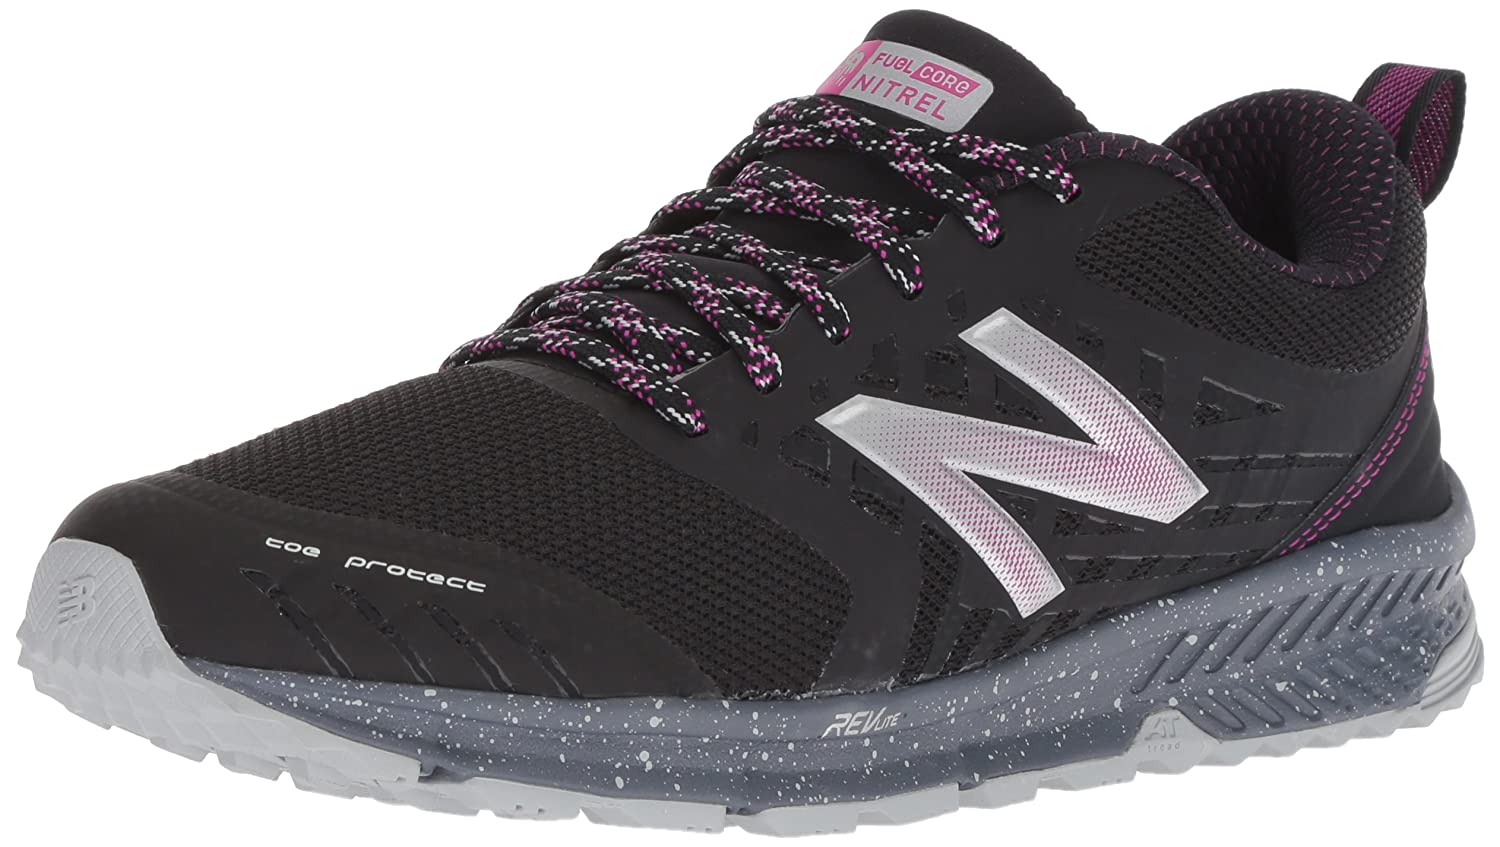 New Balance Women's Nitrel v1 FuelCore Trail Running Shoe B071WKFK8P 5 B(M) US|Black/Poison Berry